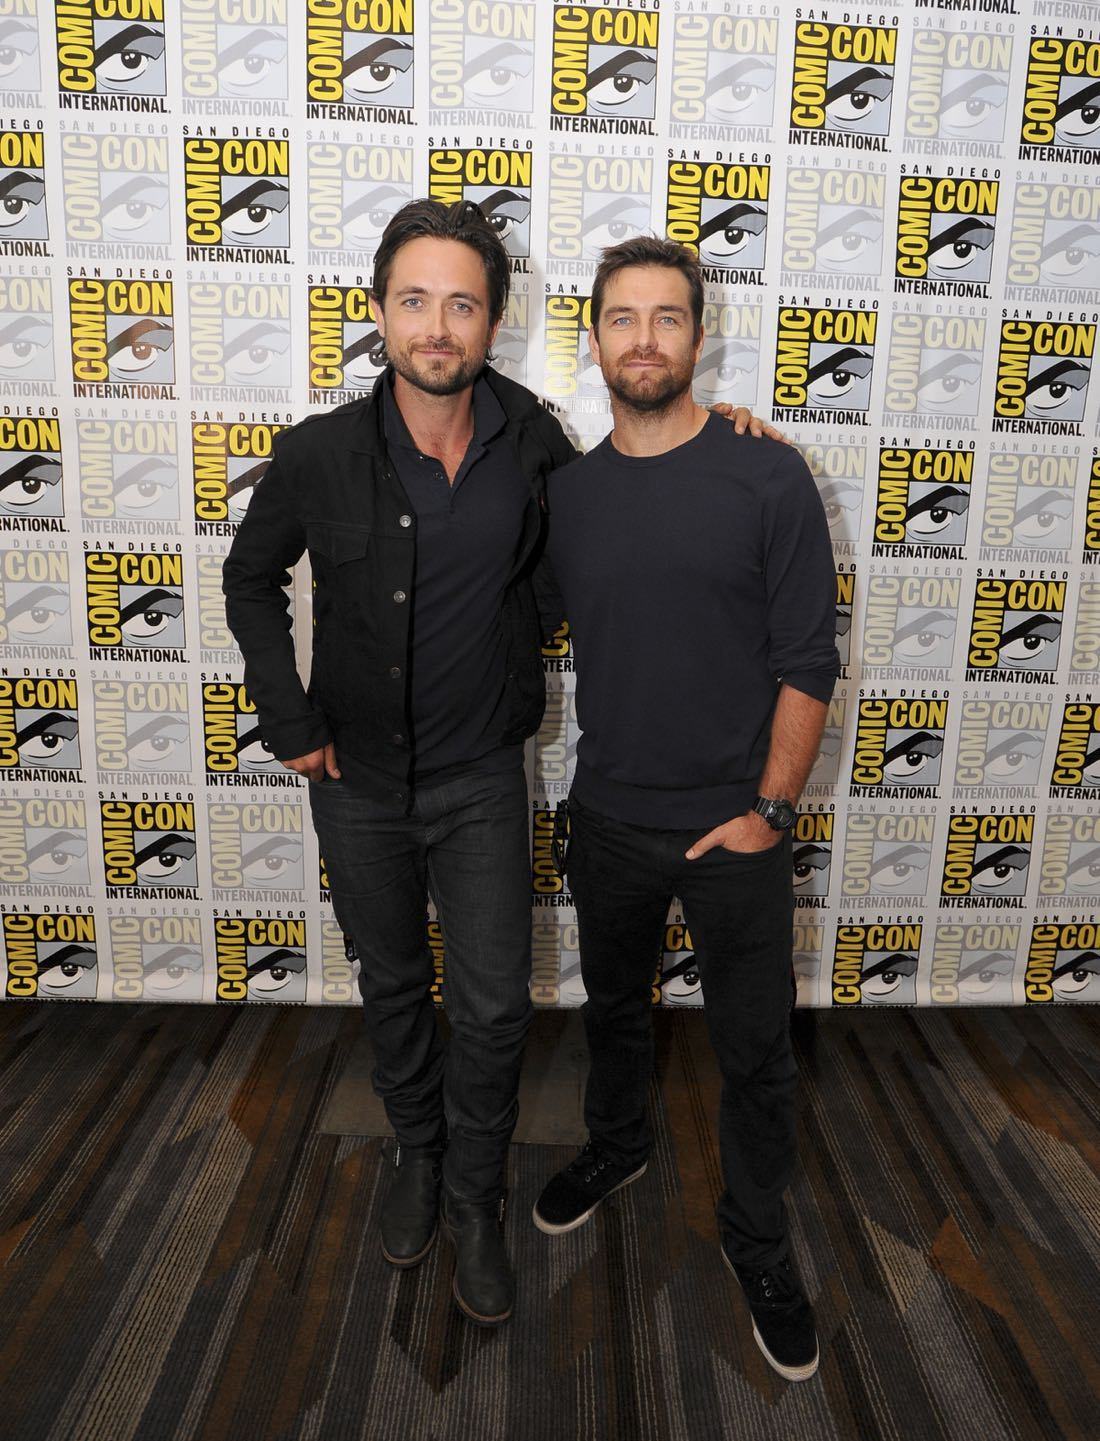 Justin Chatwin and Antony Starr of American Gothic at COMIC-CON® 2016 in San Diego, California. Photo: Johnny Vy/CBS ©2016 CBS Broadcasting, Inc. All Rights Reserved